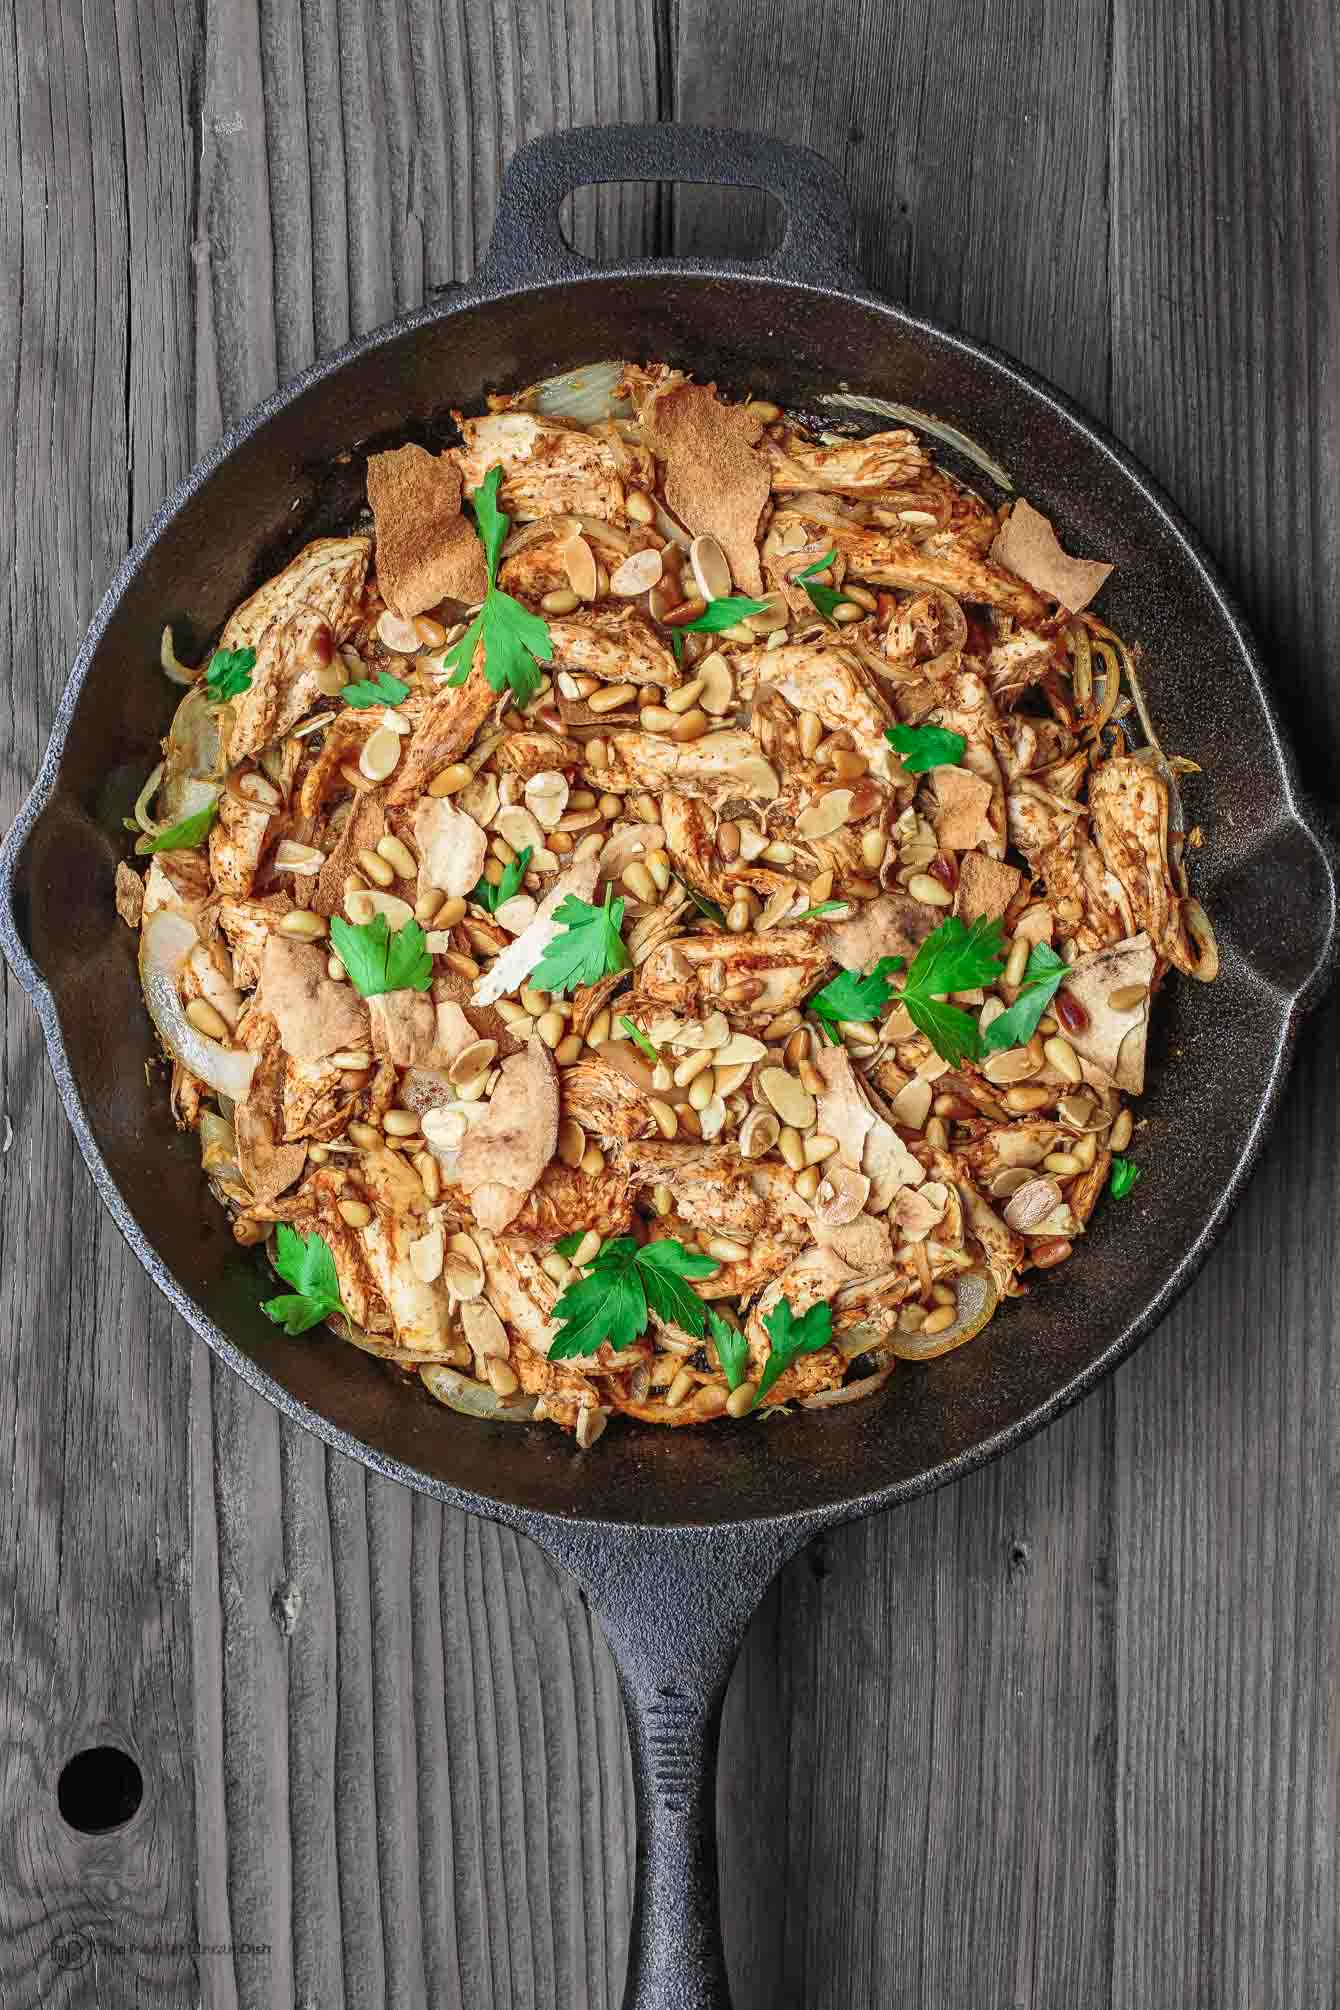 Skillet containing Lebanese Chicken Fatteh